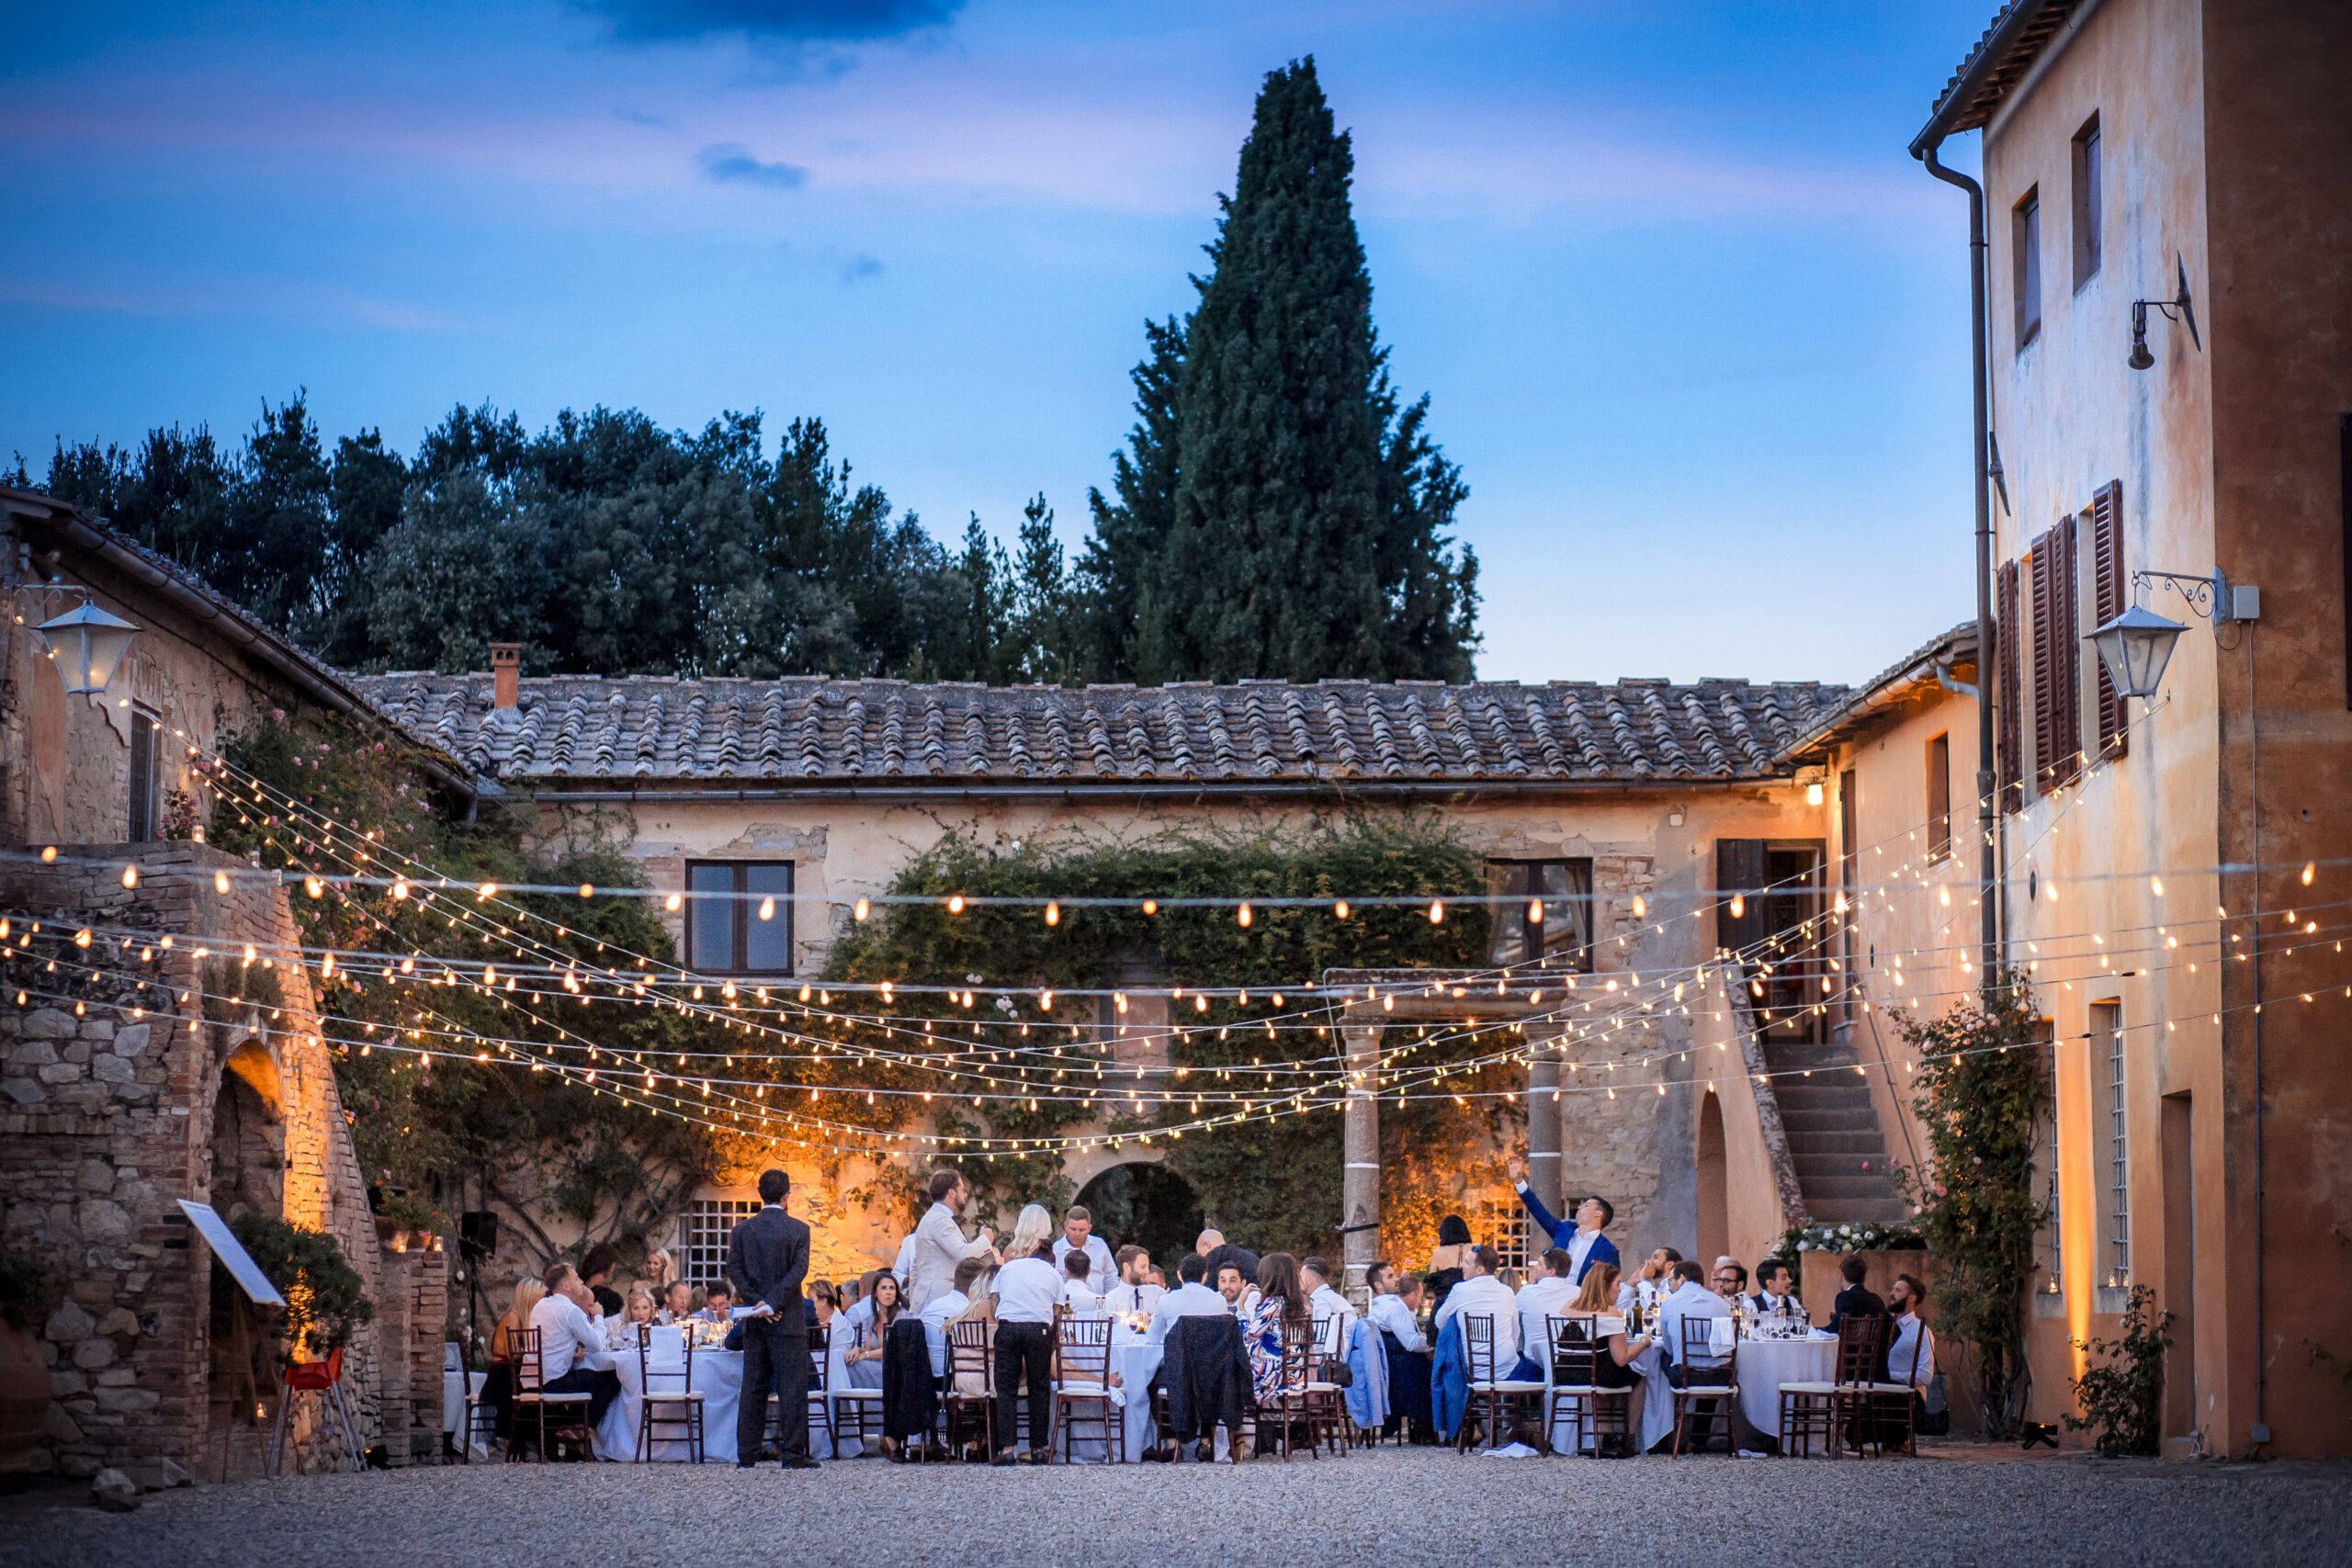 Rustic Country house courtyard illuminated